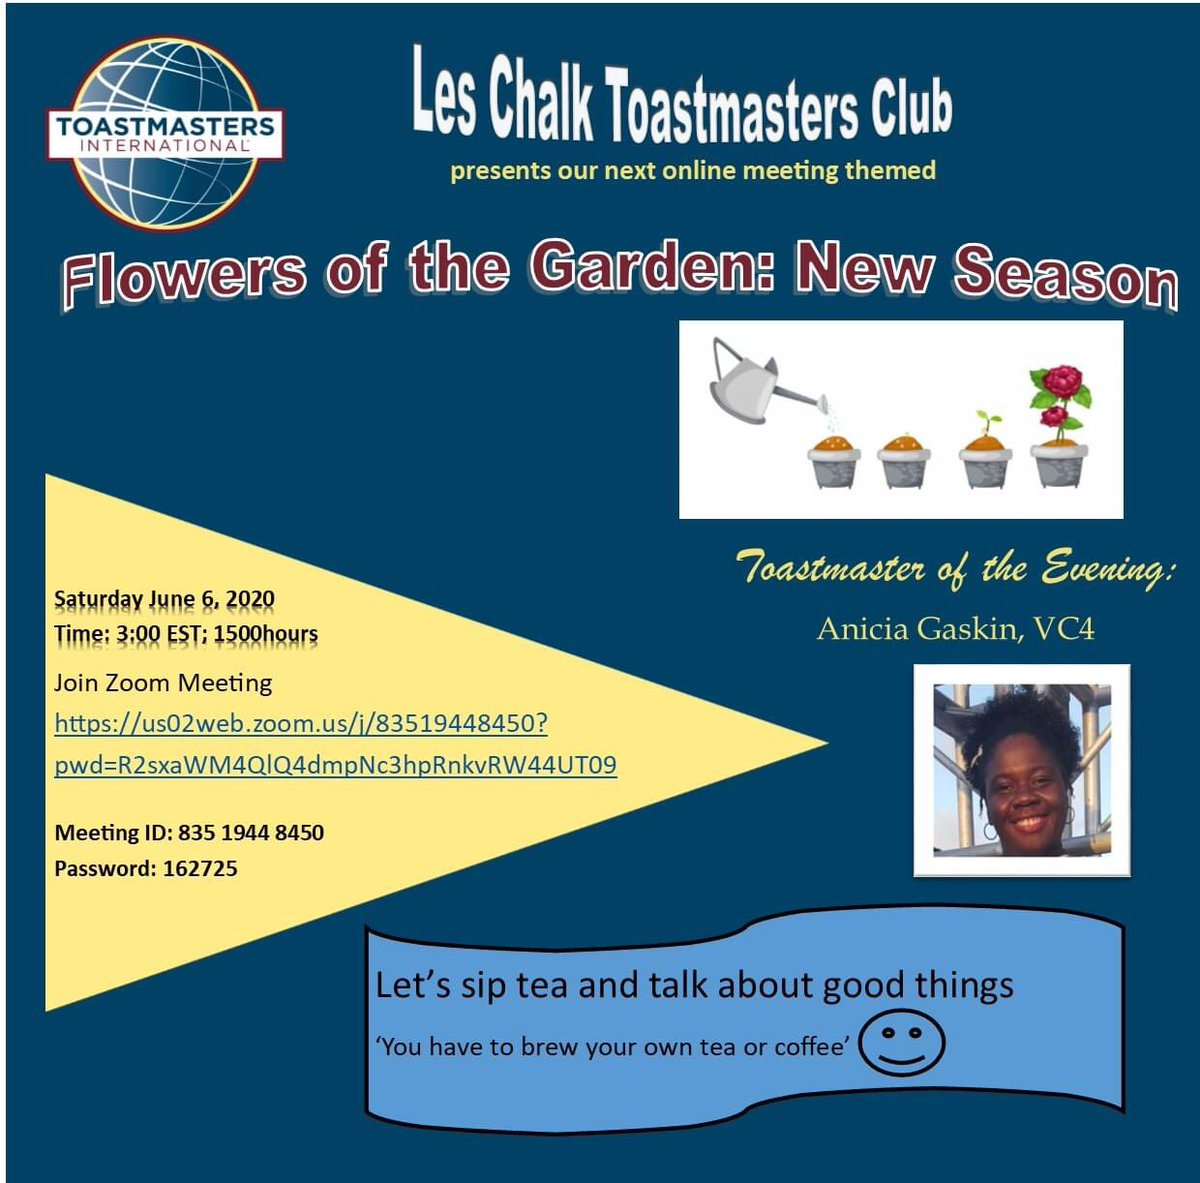 Have a  with us at our meeting this Saturday at 3 pm AST! See you there! #Toastmasters #Publicspeaking #Leadershippic.twitter.com/0ZUBRIjXmm